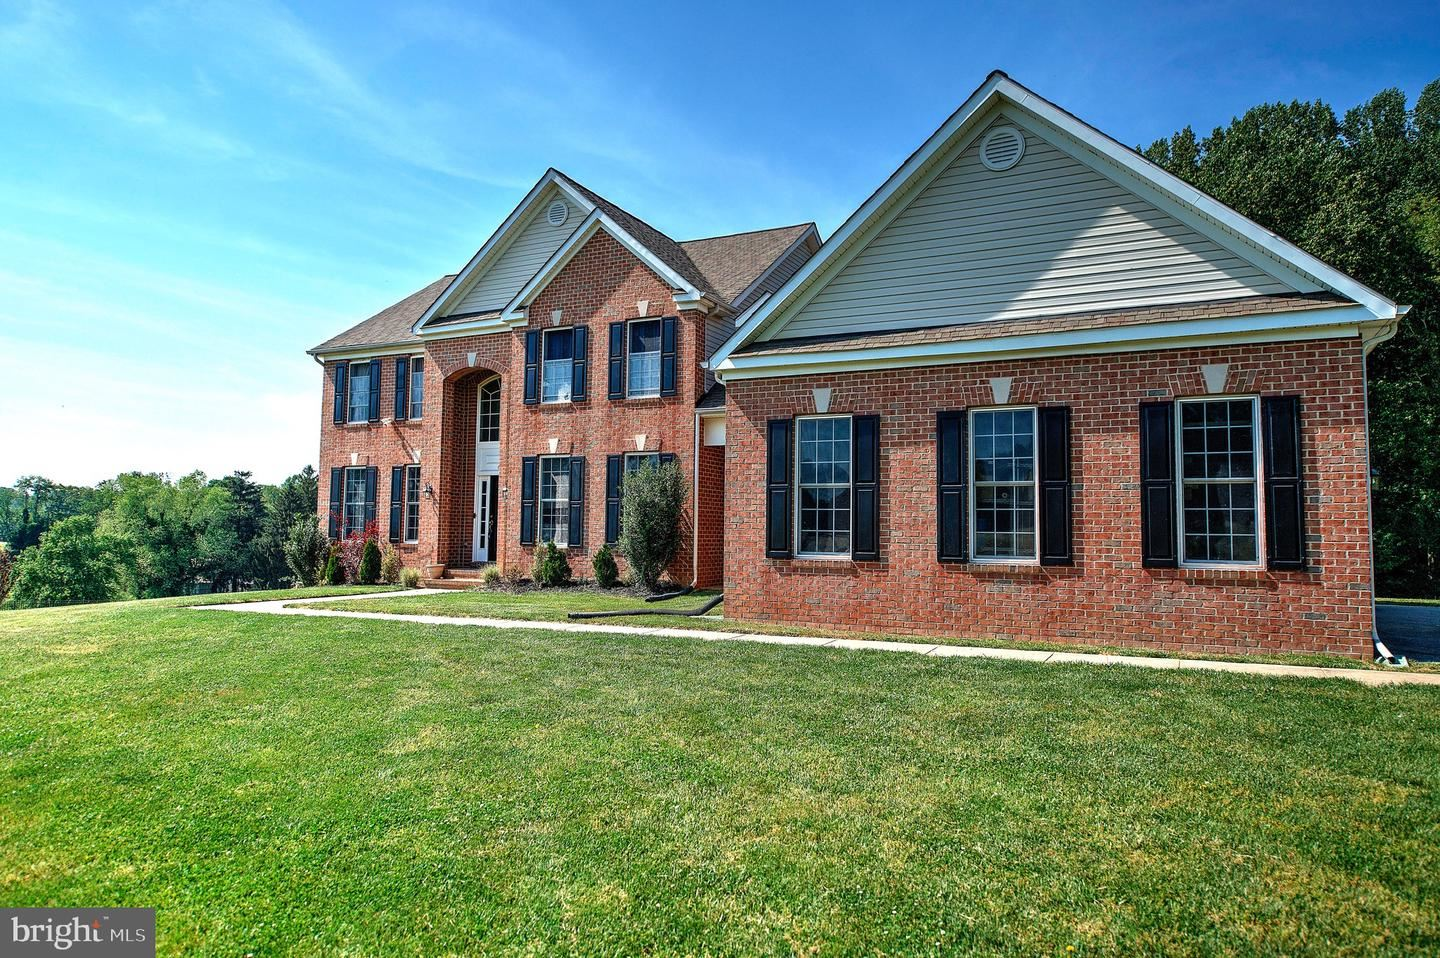 628 CHESTNUT HILL RD, Forest Hill, MD 21050 - MLS#: MDHR259124